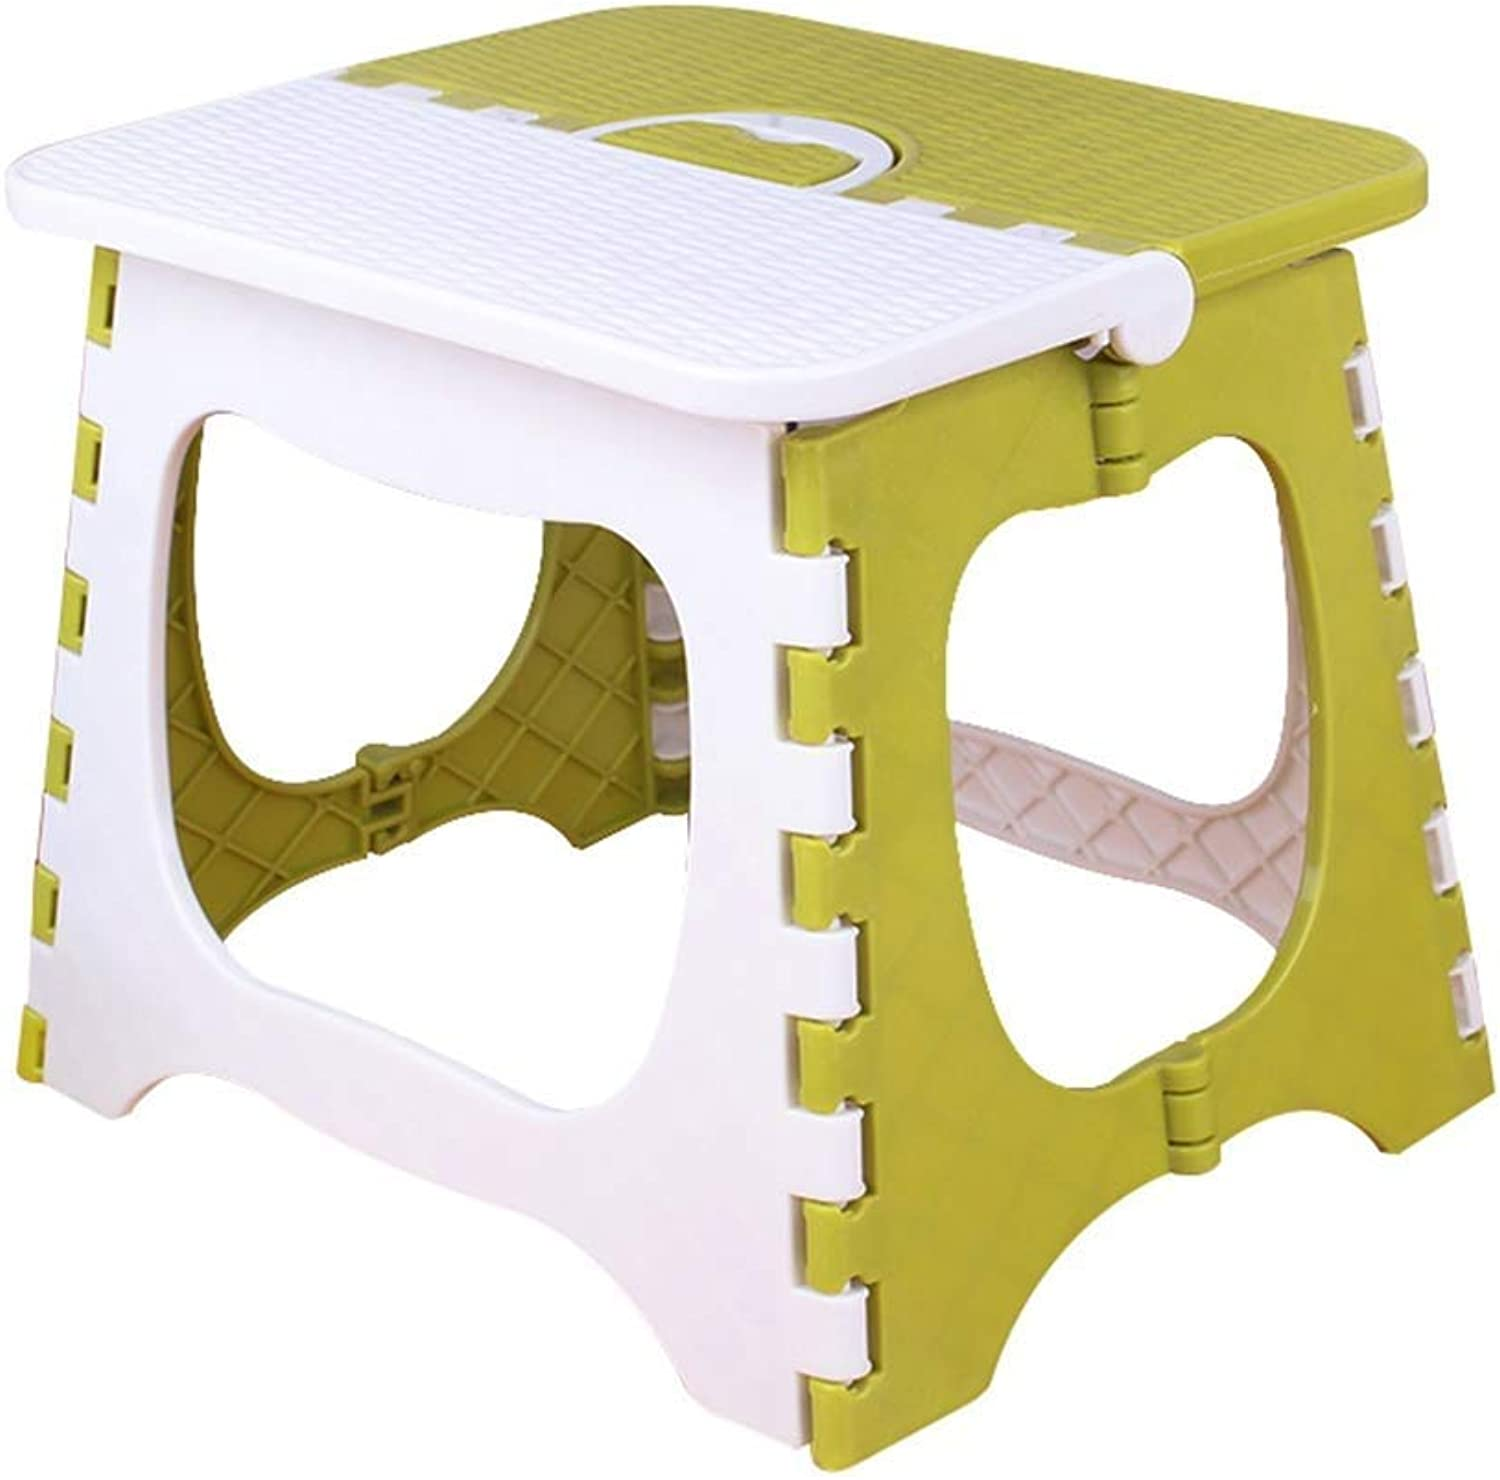 Footstool, Simple Stool, Folding Stool, economical Small Bench Multifunctional Storage Footstool (color   Green, Size   A)